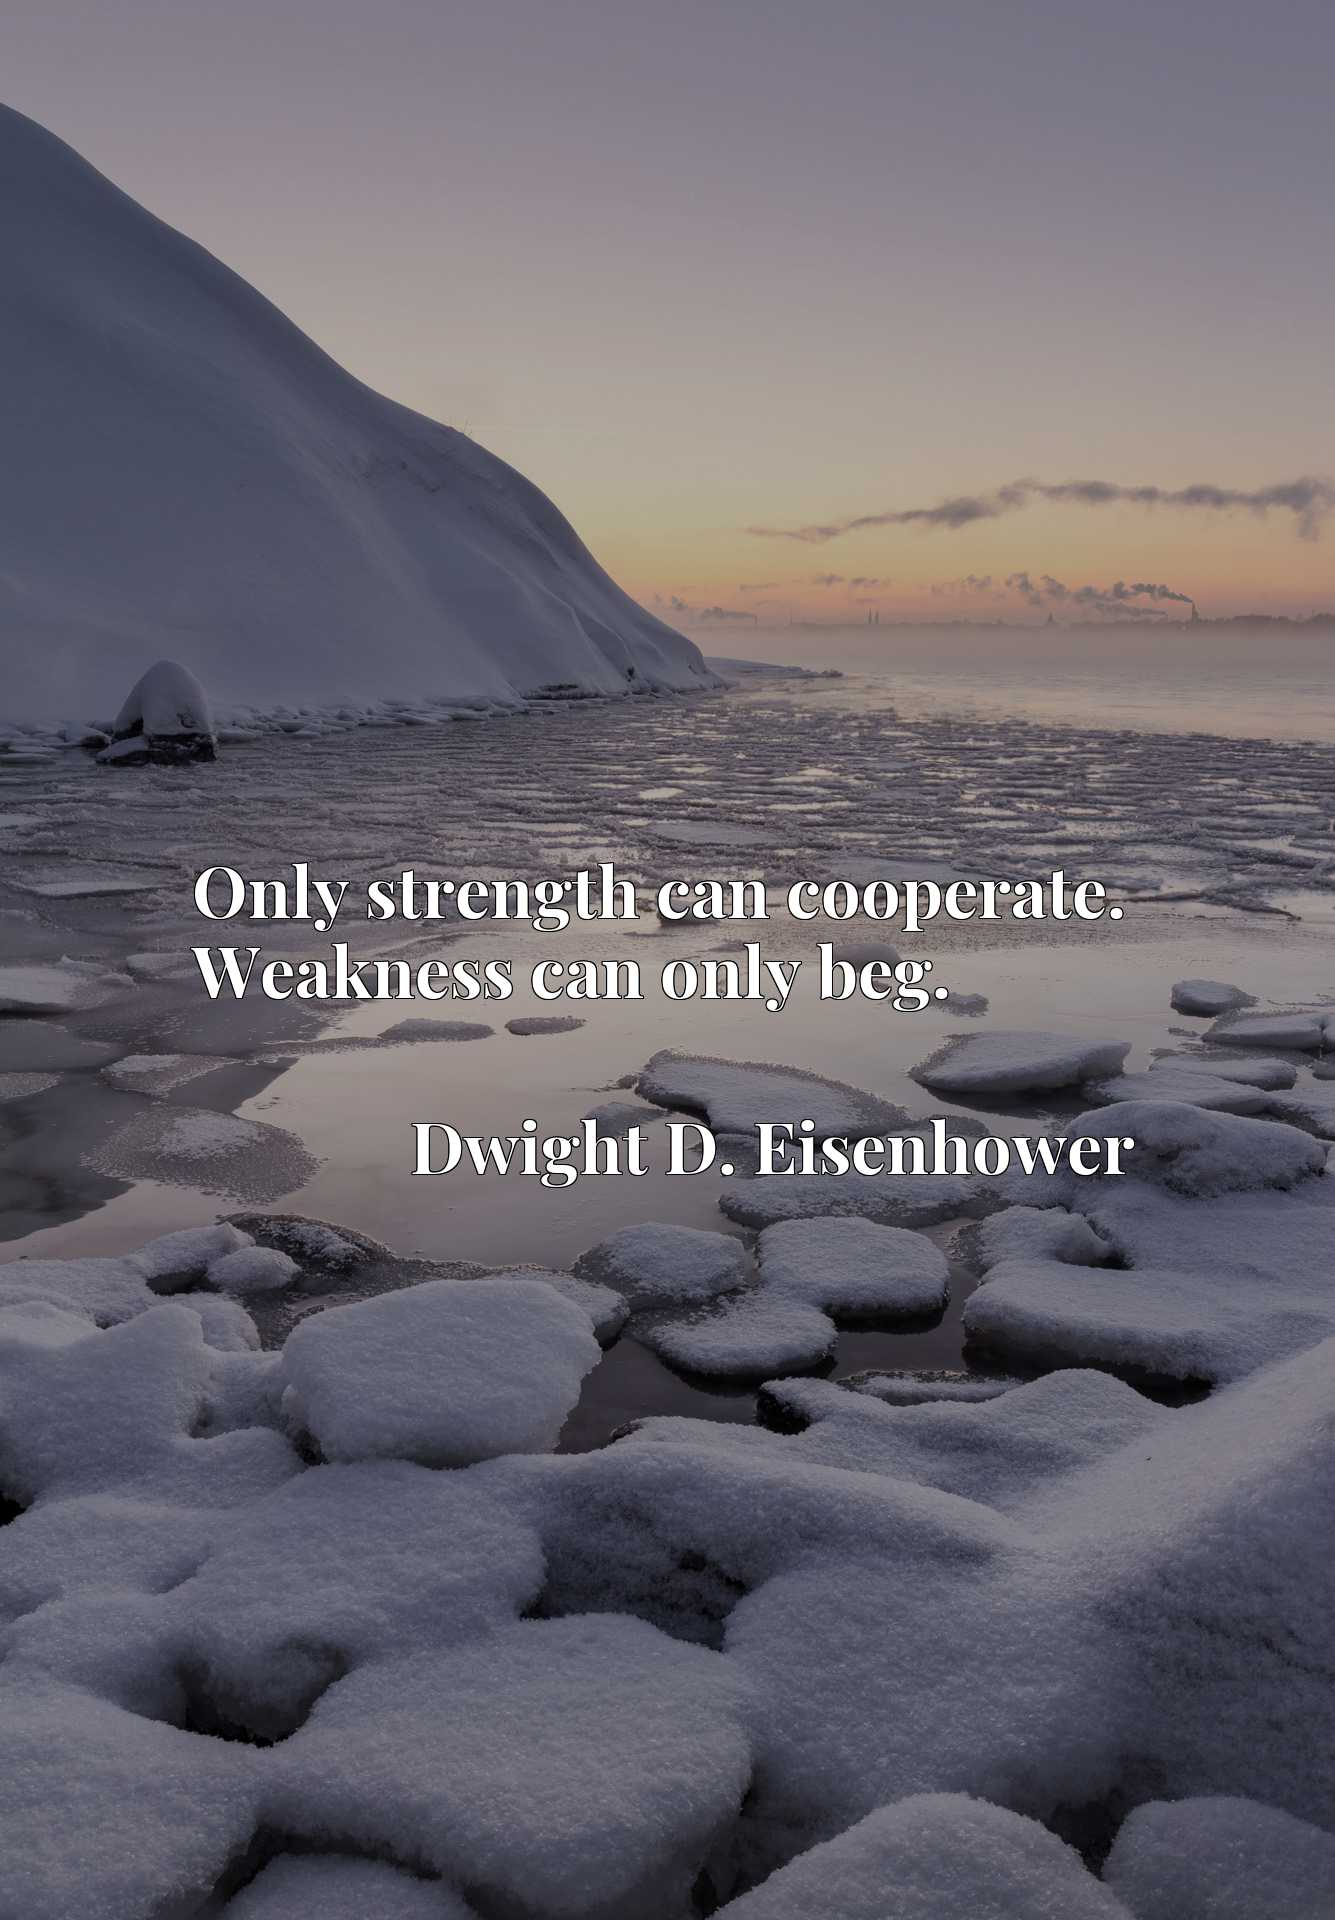 Quote Picture :Only strength can cooperate. Weakness can only beg.